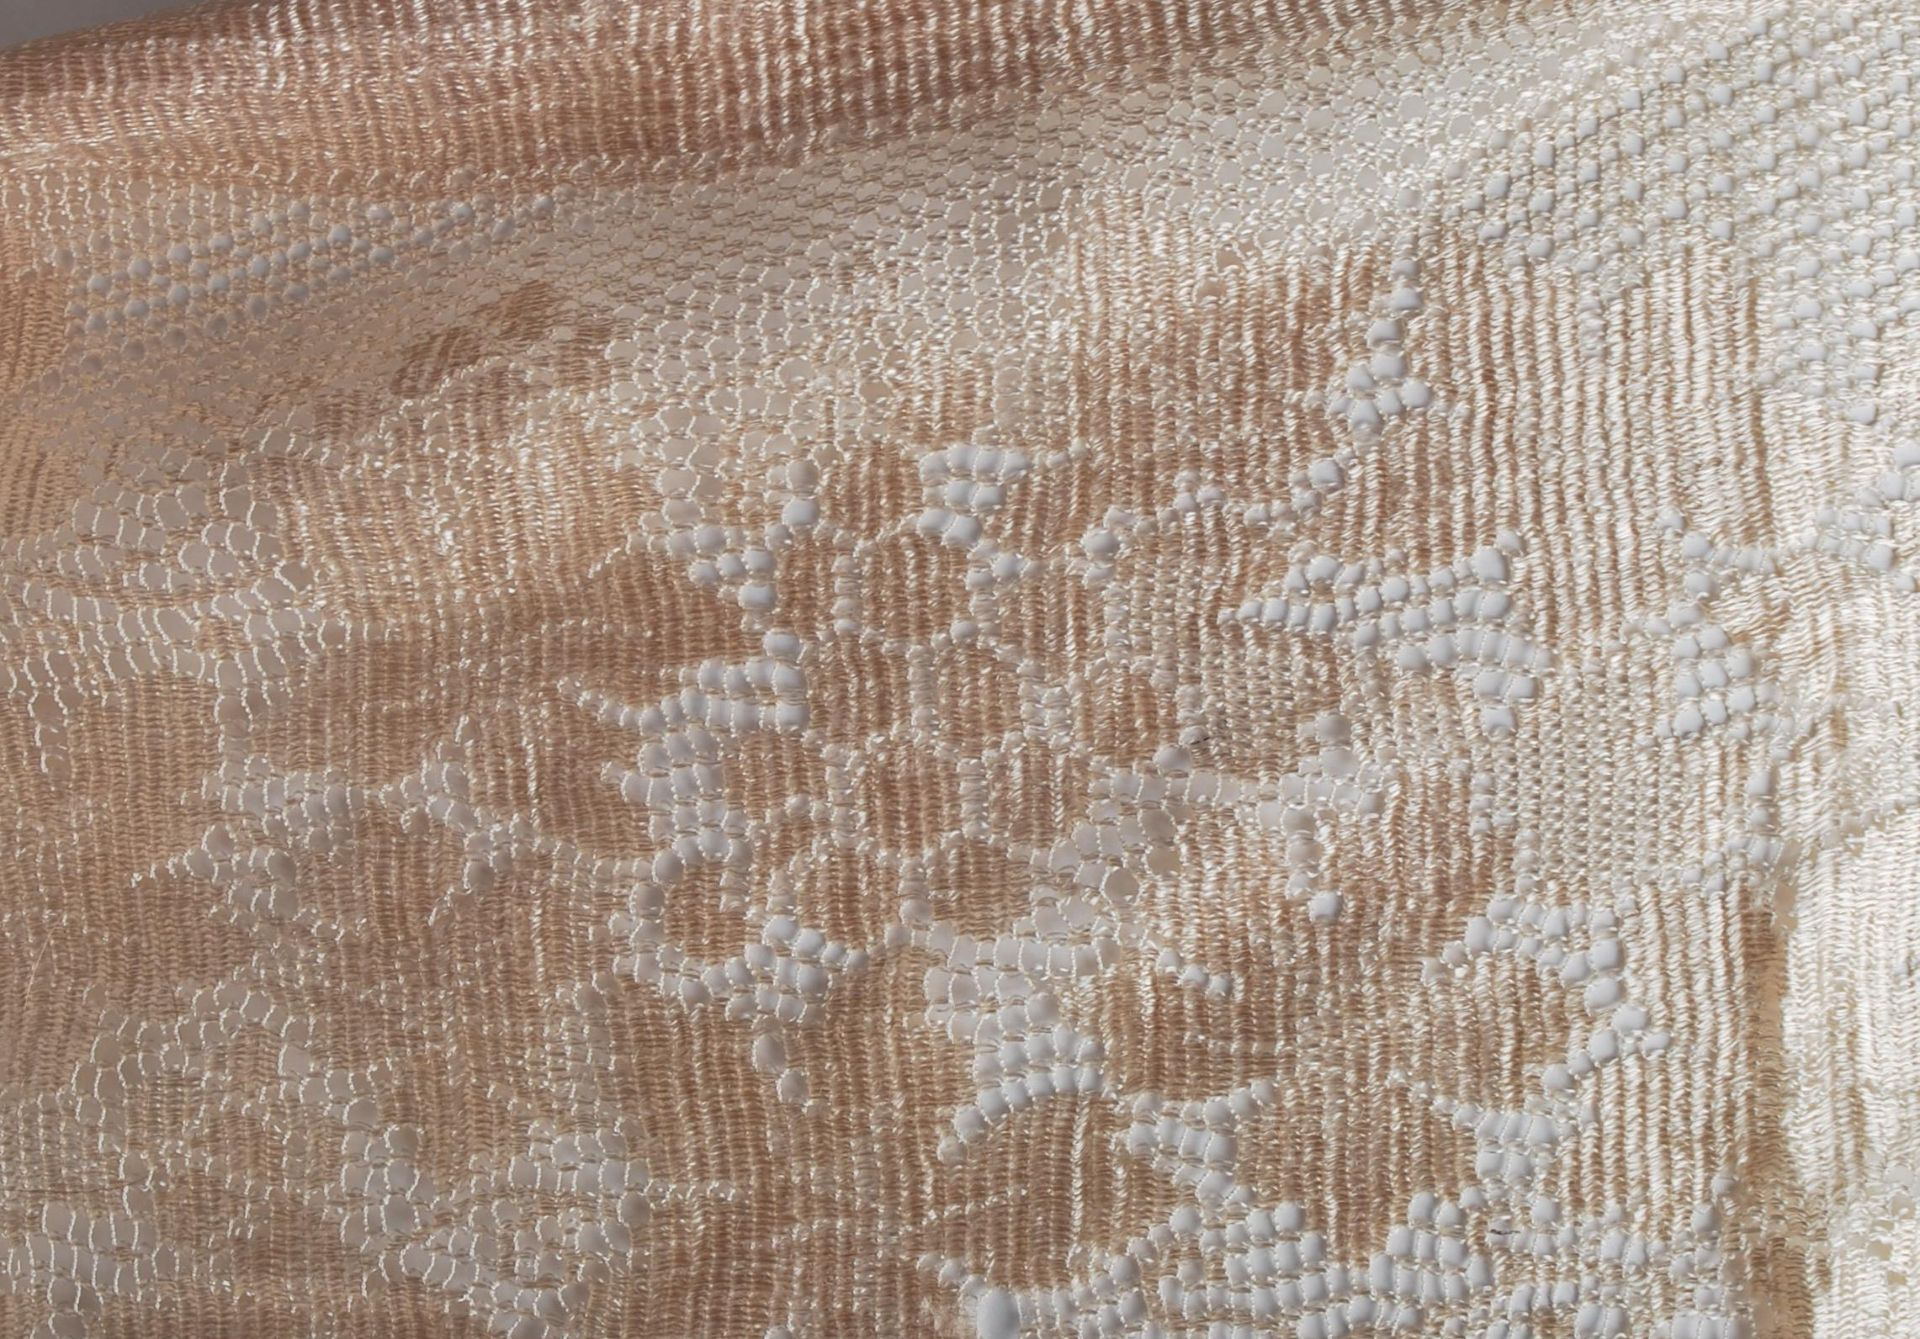 19TH CENTURY VICTORIAN TABLECLOTH AND PILLOW CASES - Image 10 of 10